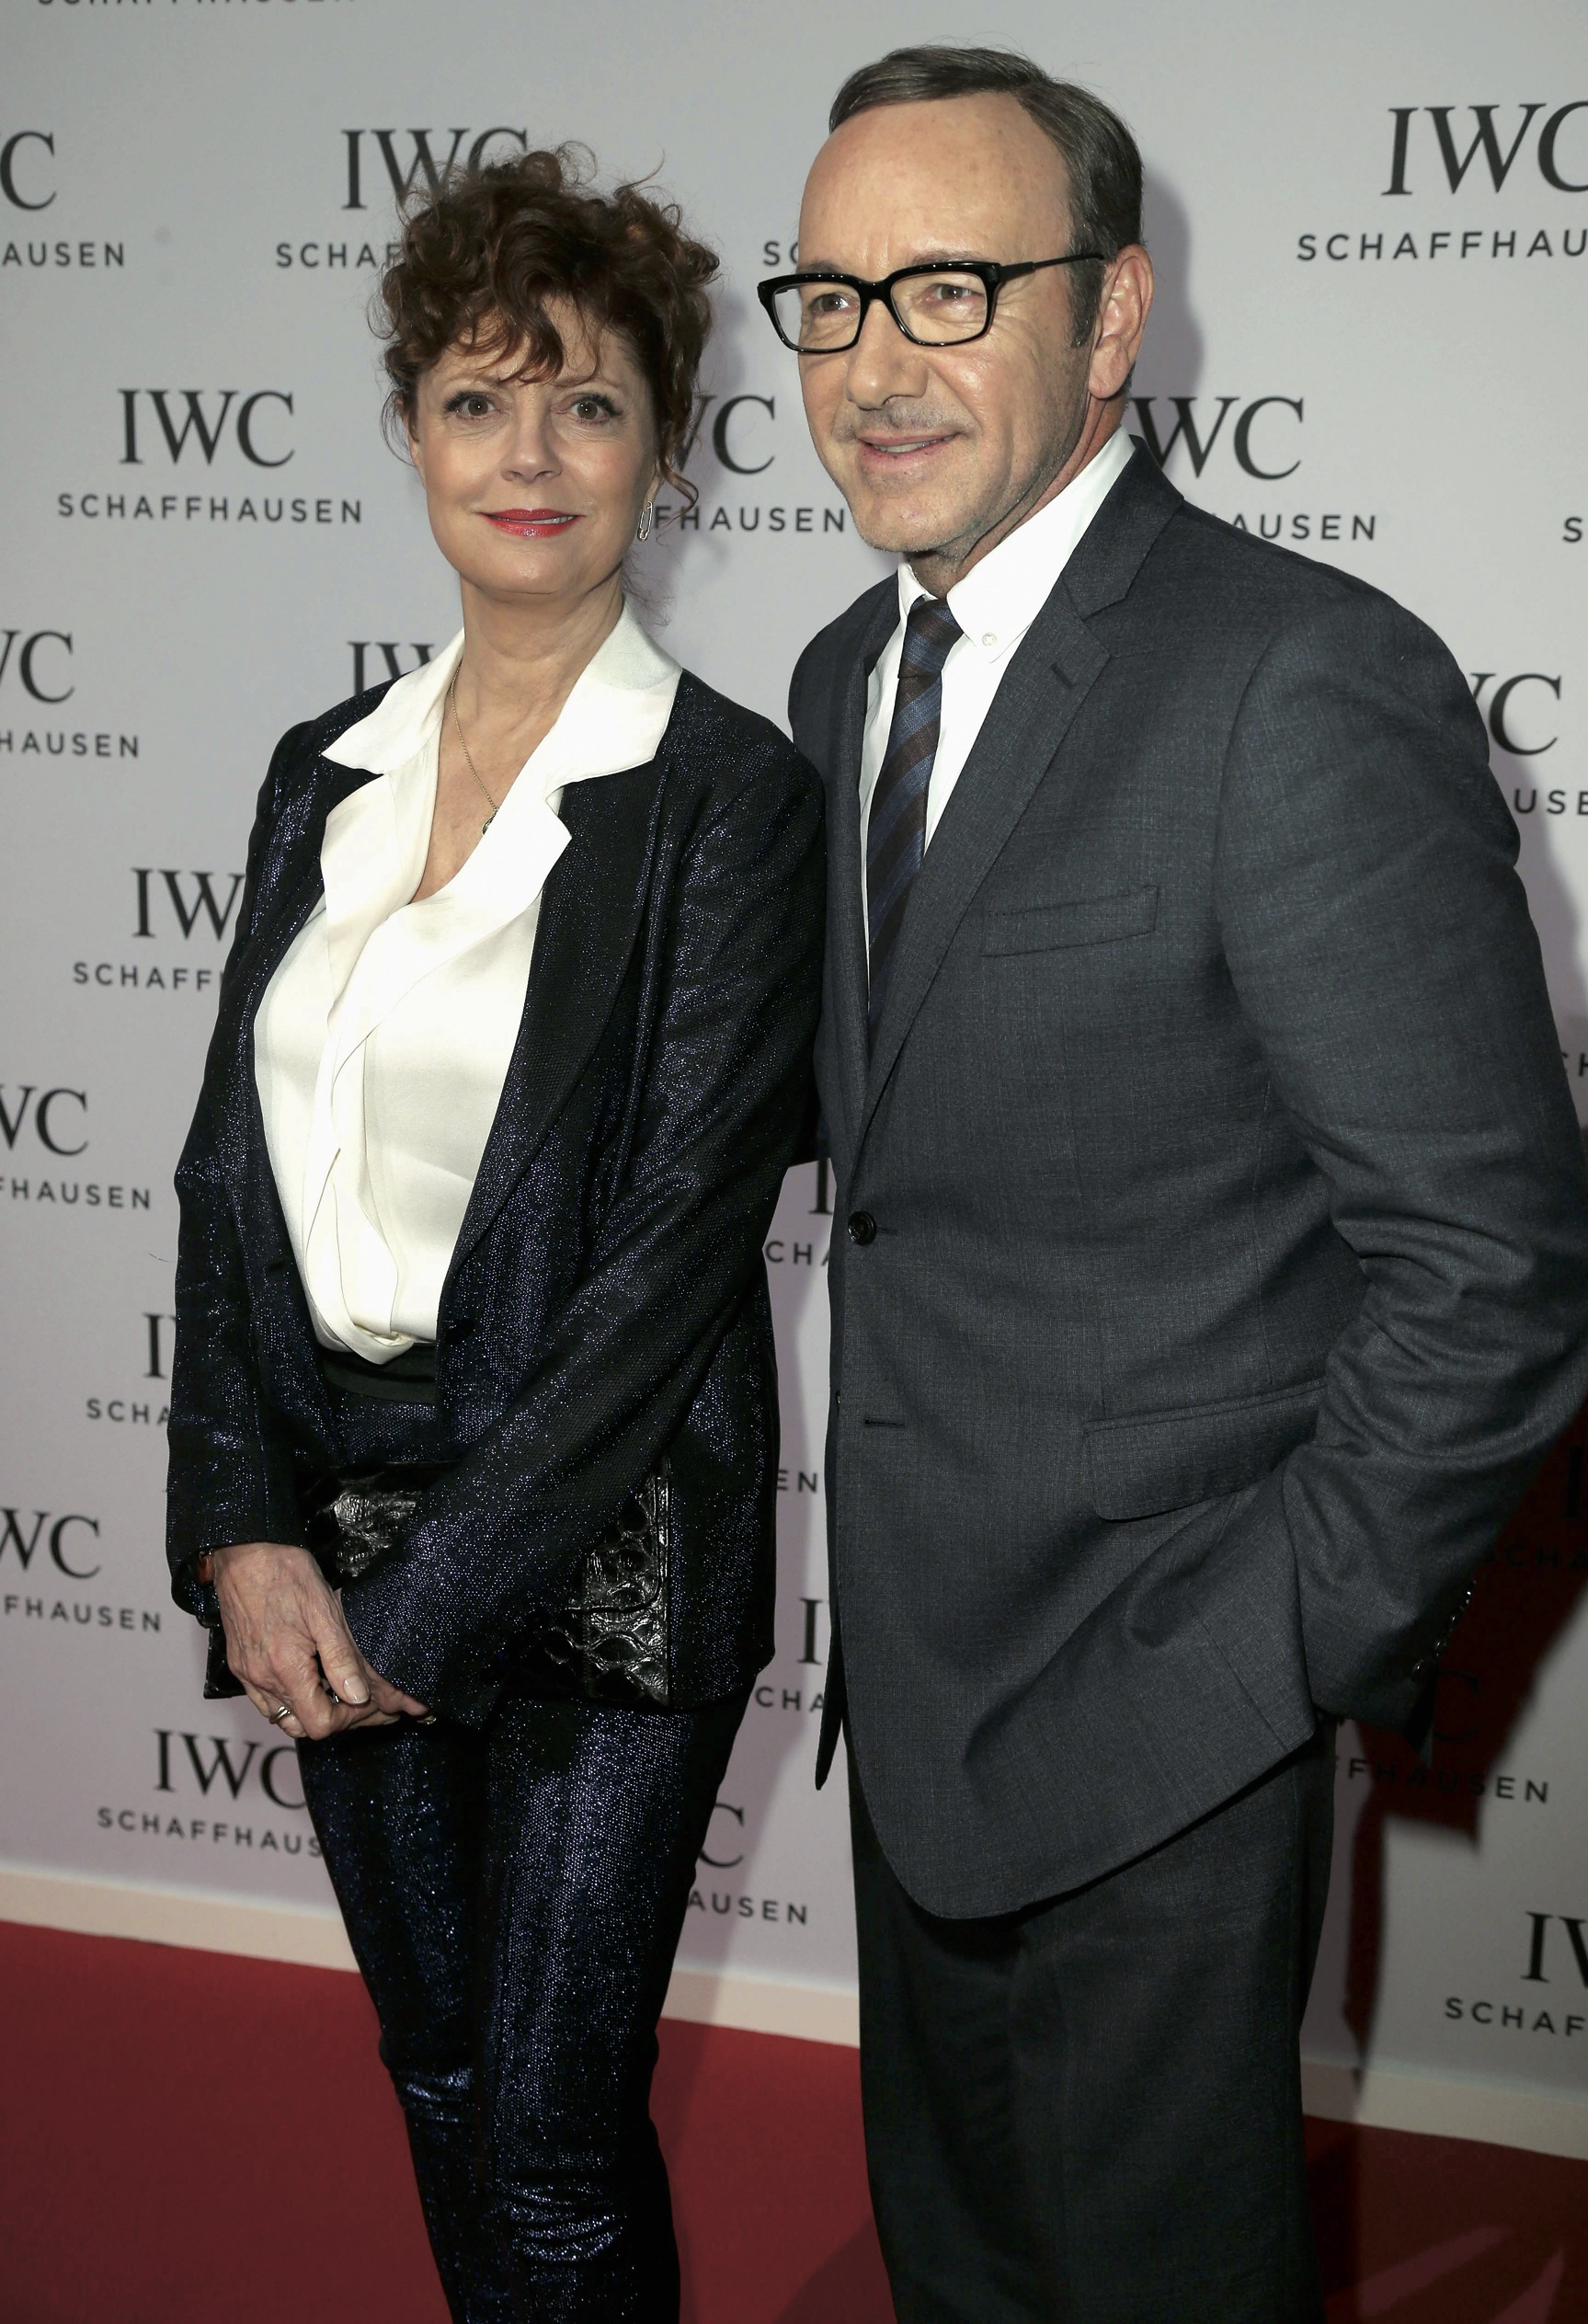 Susan Sarandon and Kevin Spacey in IWC.